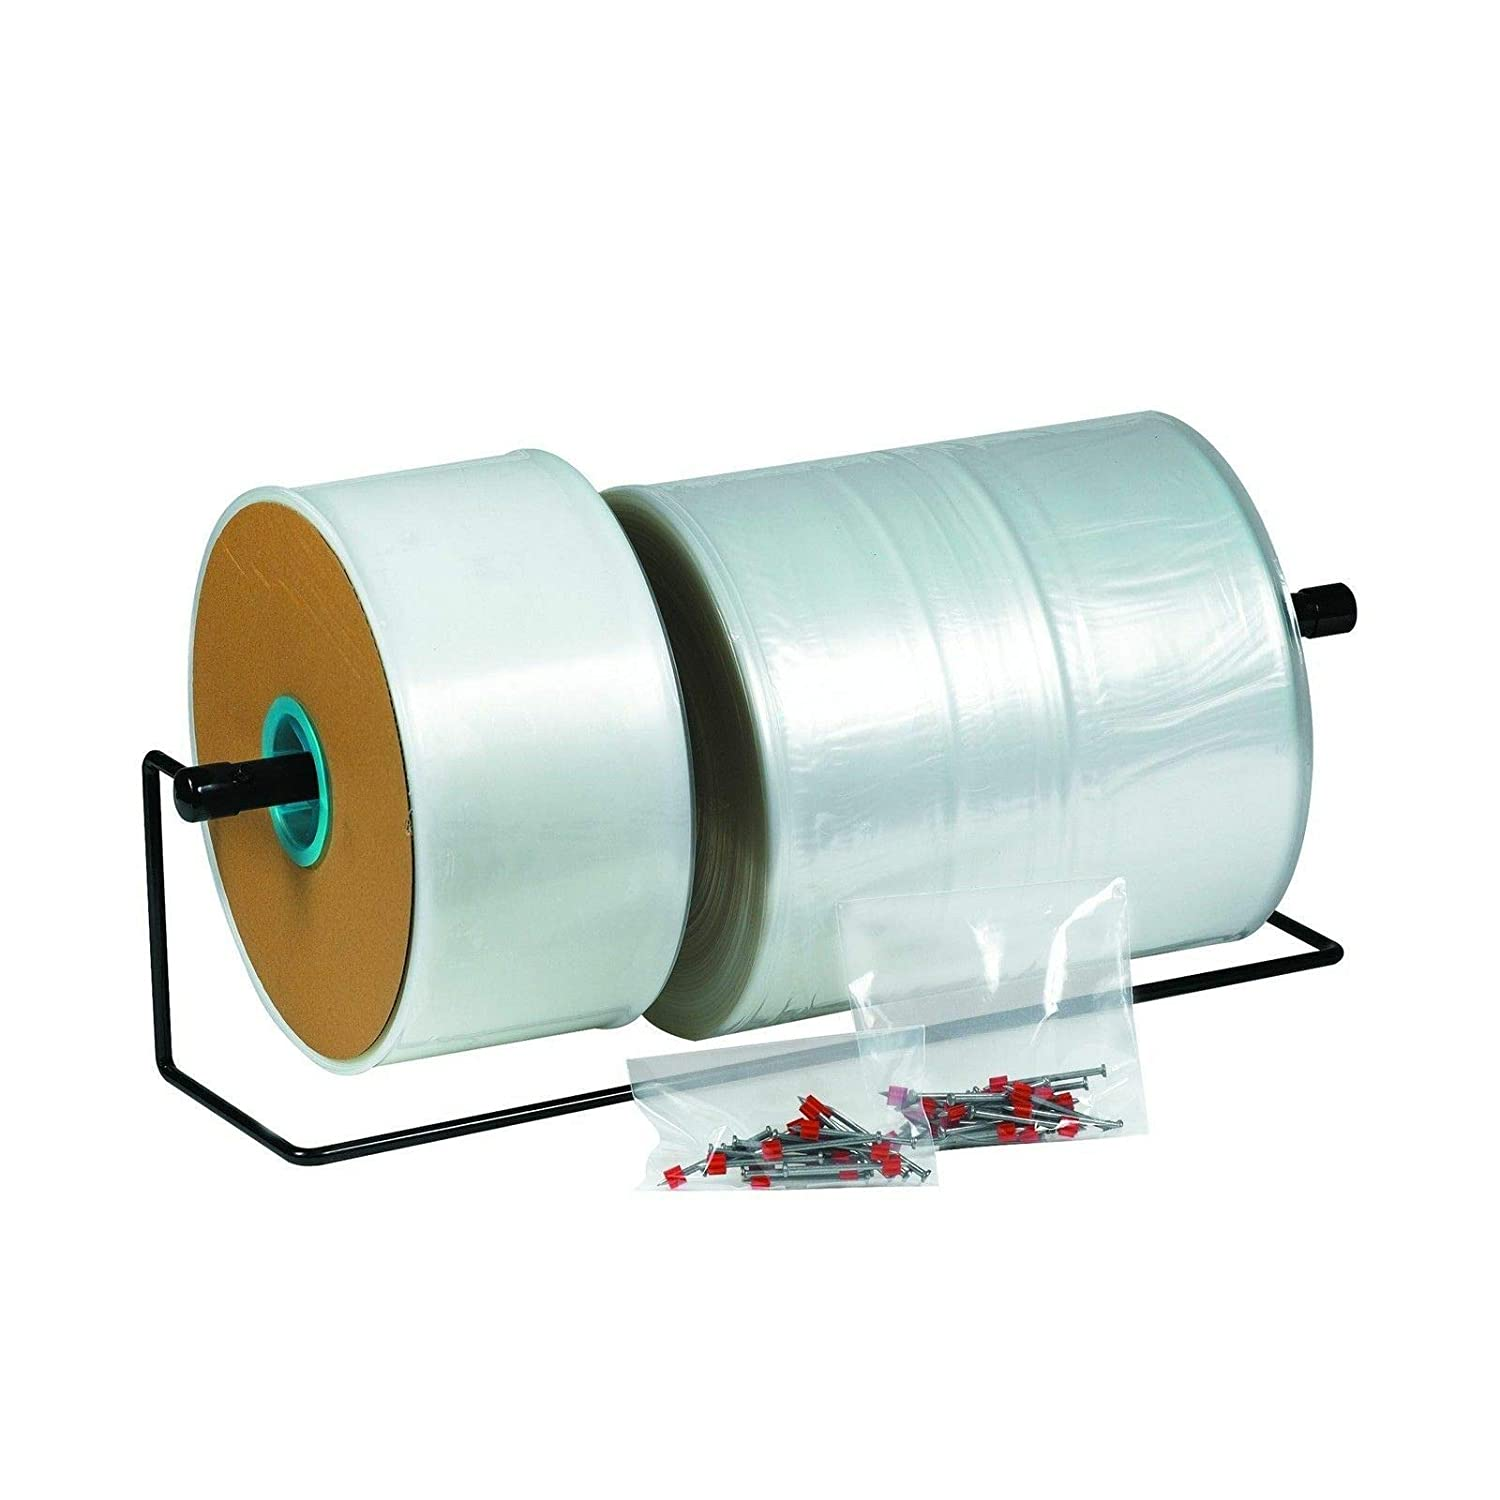 Rantepao Max 56% OFF - Poly Tubing Clear Bags Roll x 1450' Thickness Las Vegas Mall 14